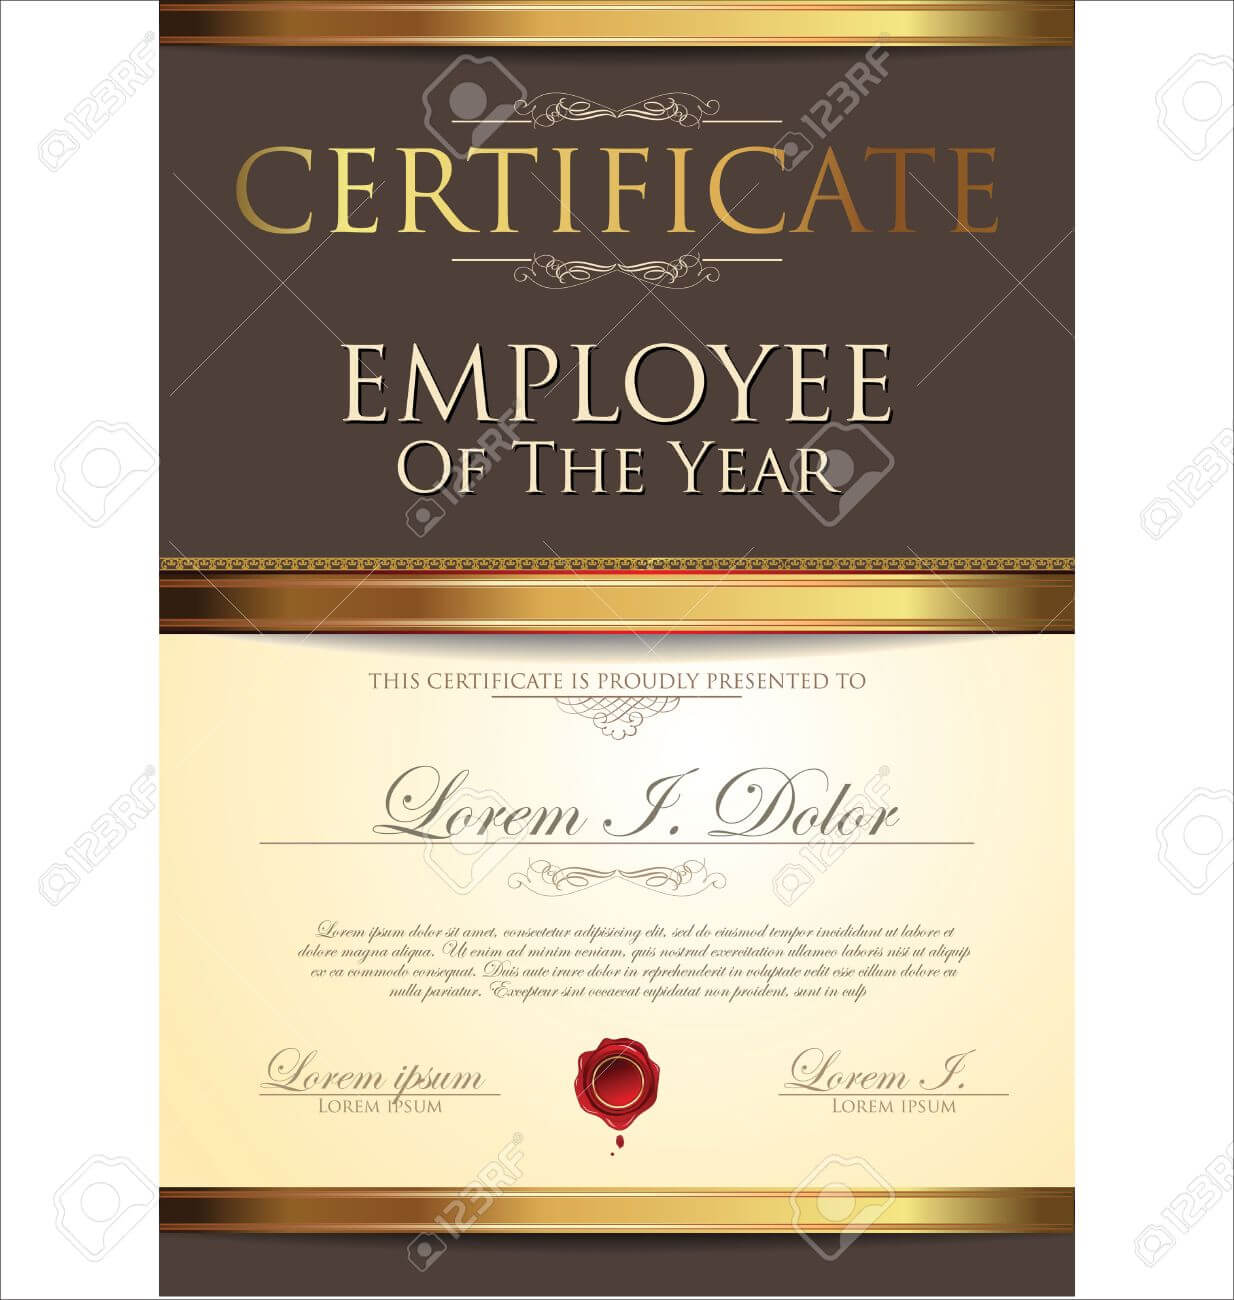 Certificate Template, Employee Of The Year Pertaining To Employee Of The Year Certificate Template Free